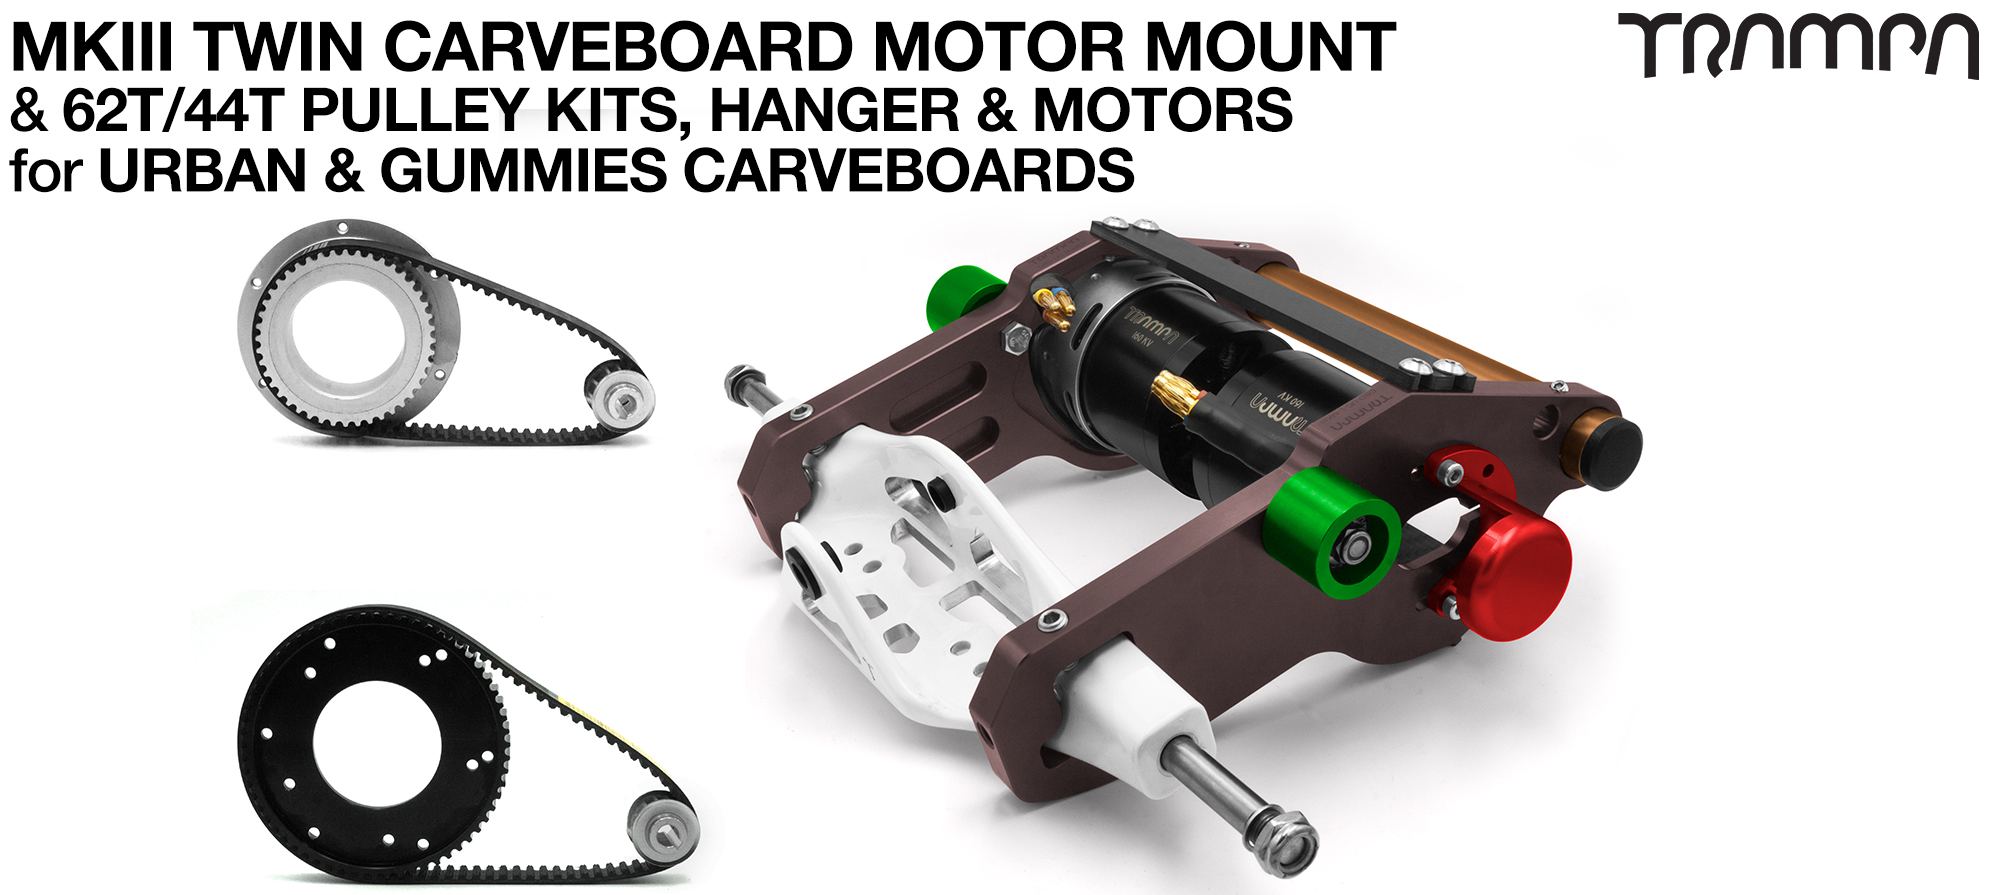 MkIII 2in1 CARVEBOARD Motormount on a HANGER with 44 tooth GUMMIES  & 62 tooth URBAN Pulleys & TRAMPA Motor - TWIN